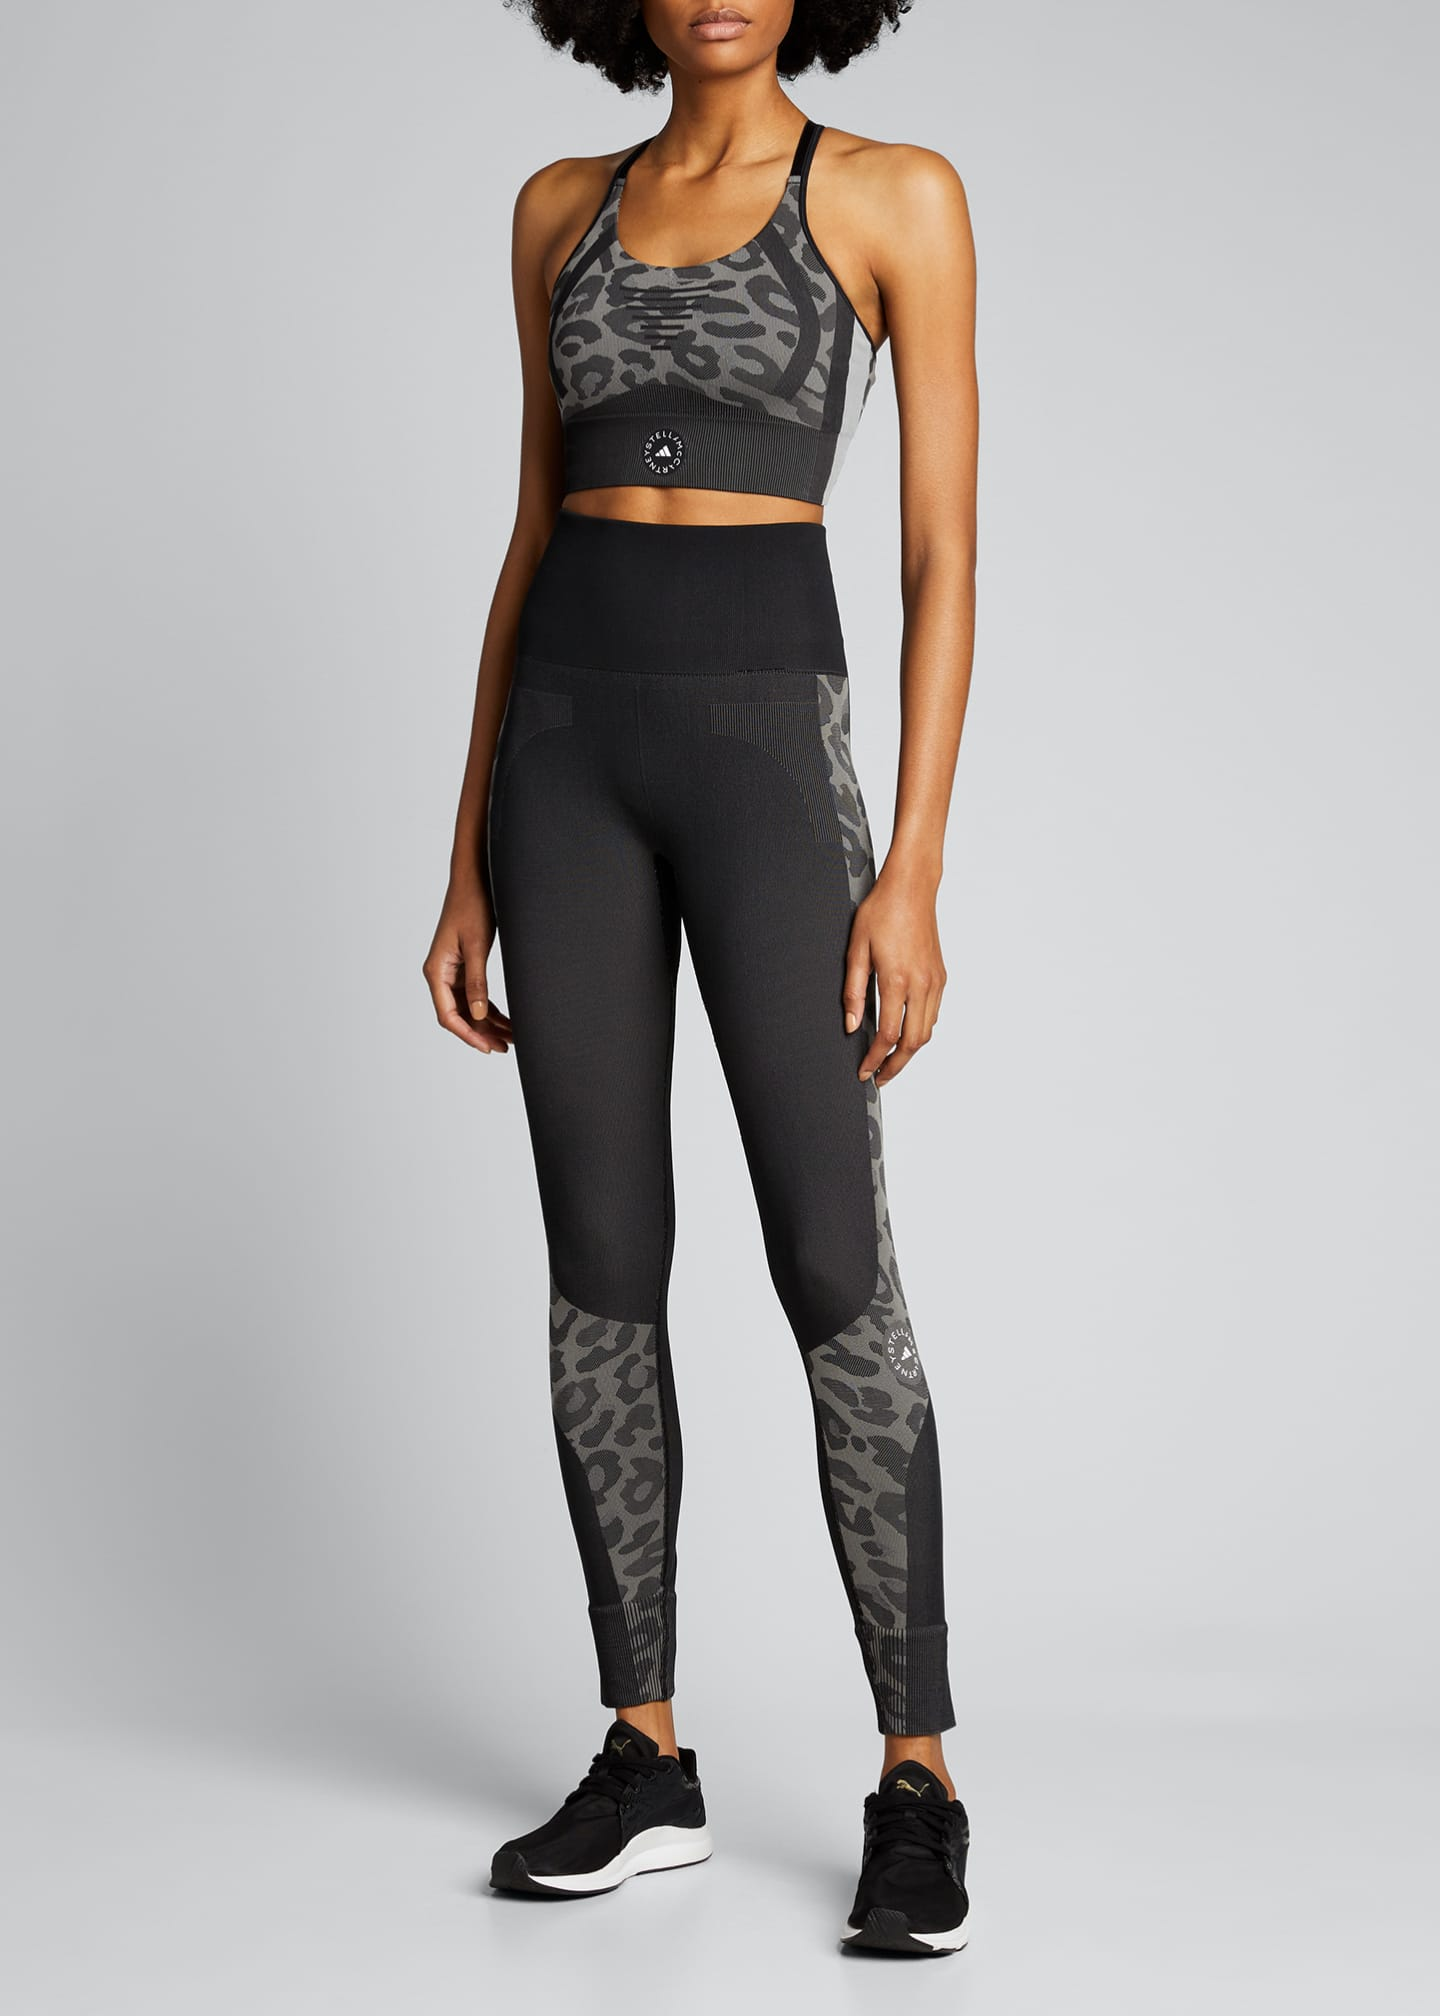 Image 1 of 5: Truepurpose Colorblock Animal Print Active Tights